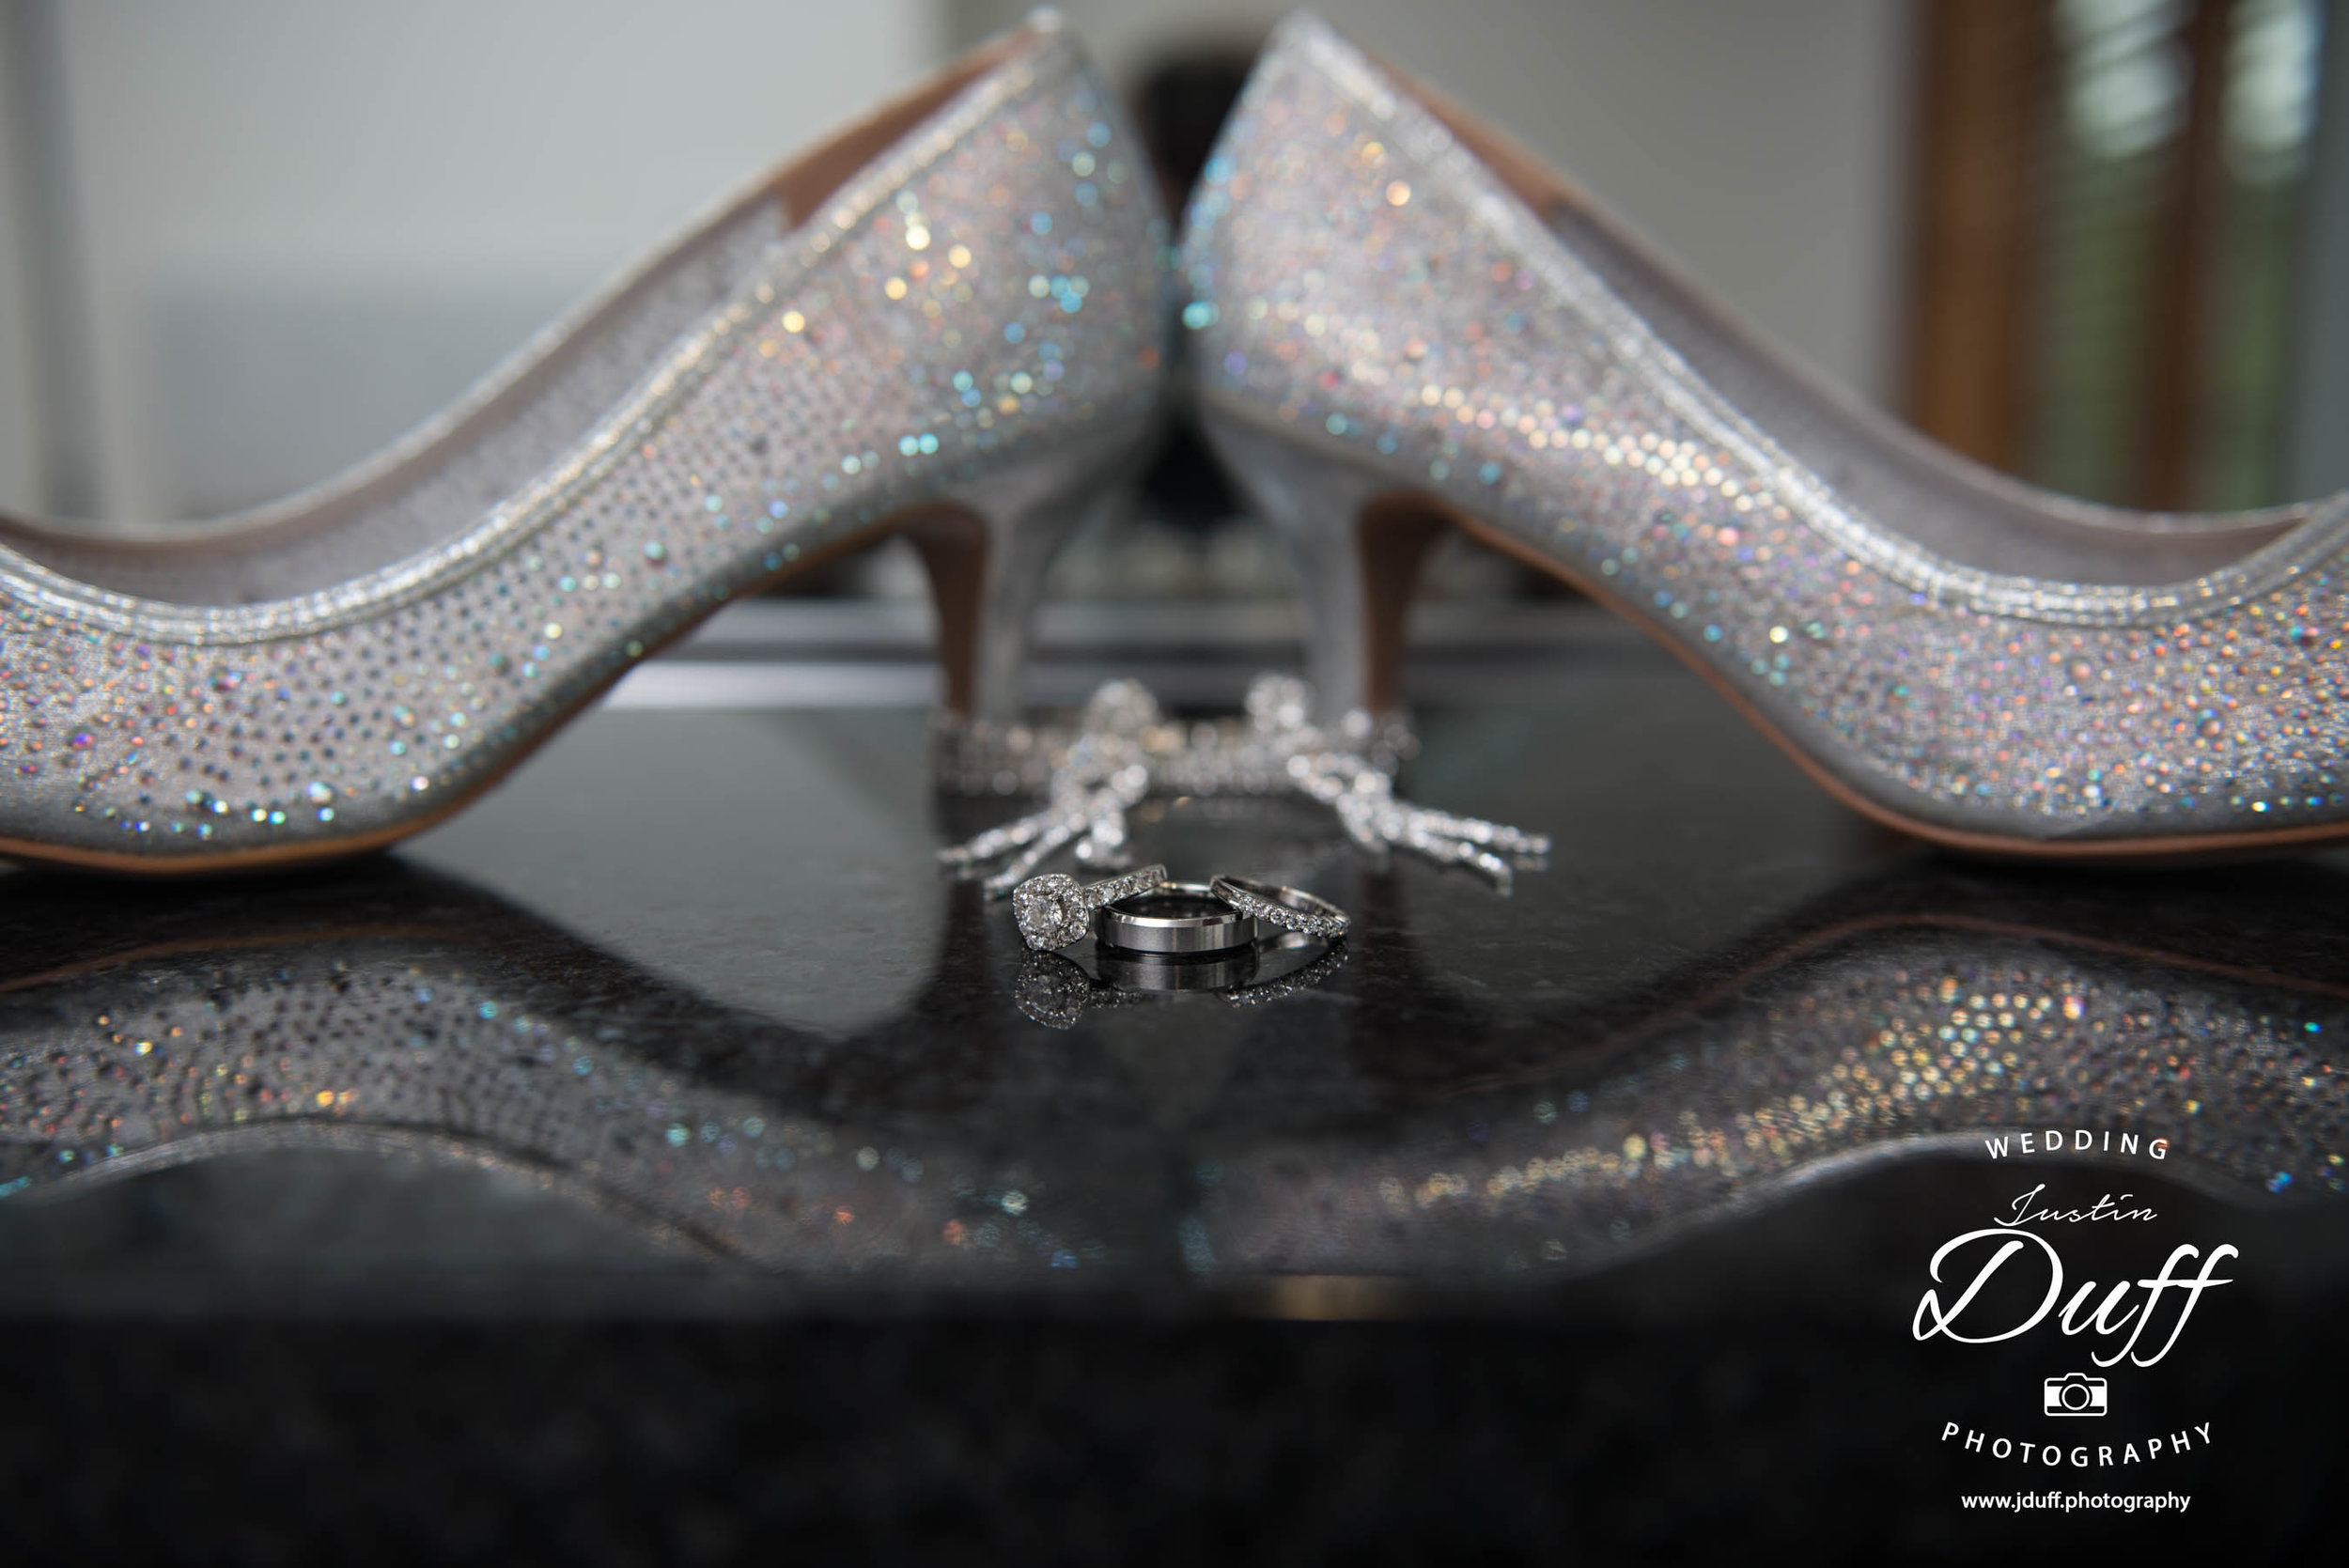 Fountains Golf Course Wedding - Royal Oak Photographer – Deanna & Shane wedding rings and shoes reflecting